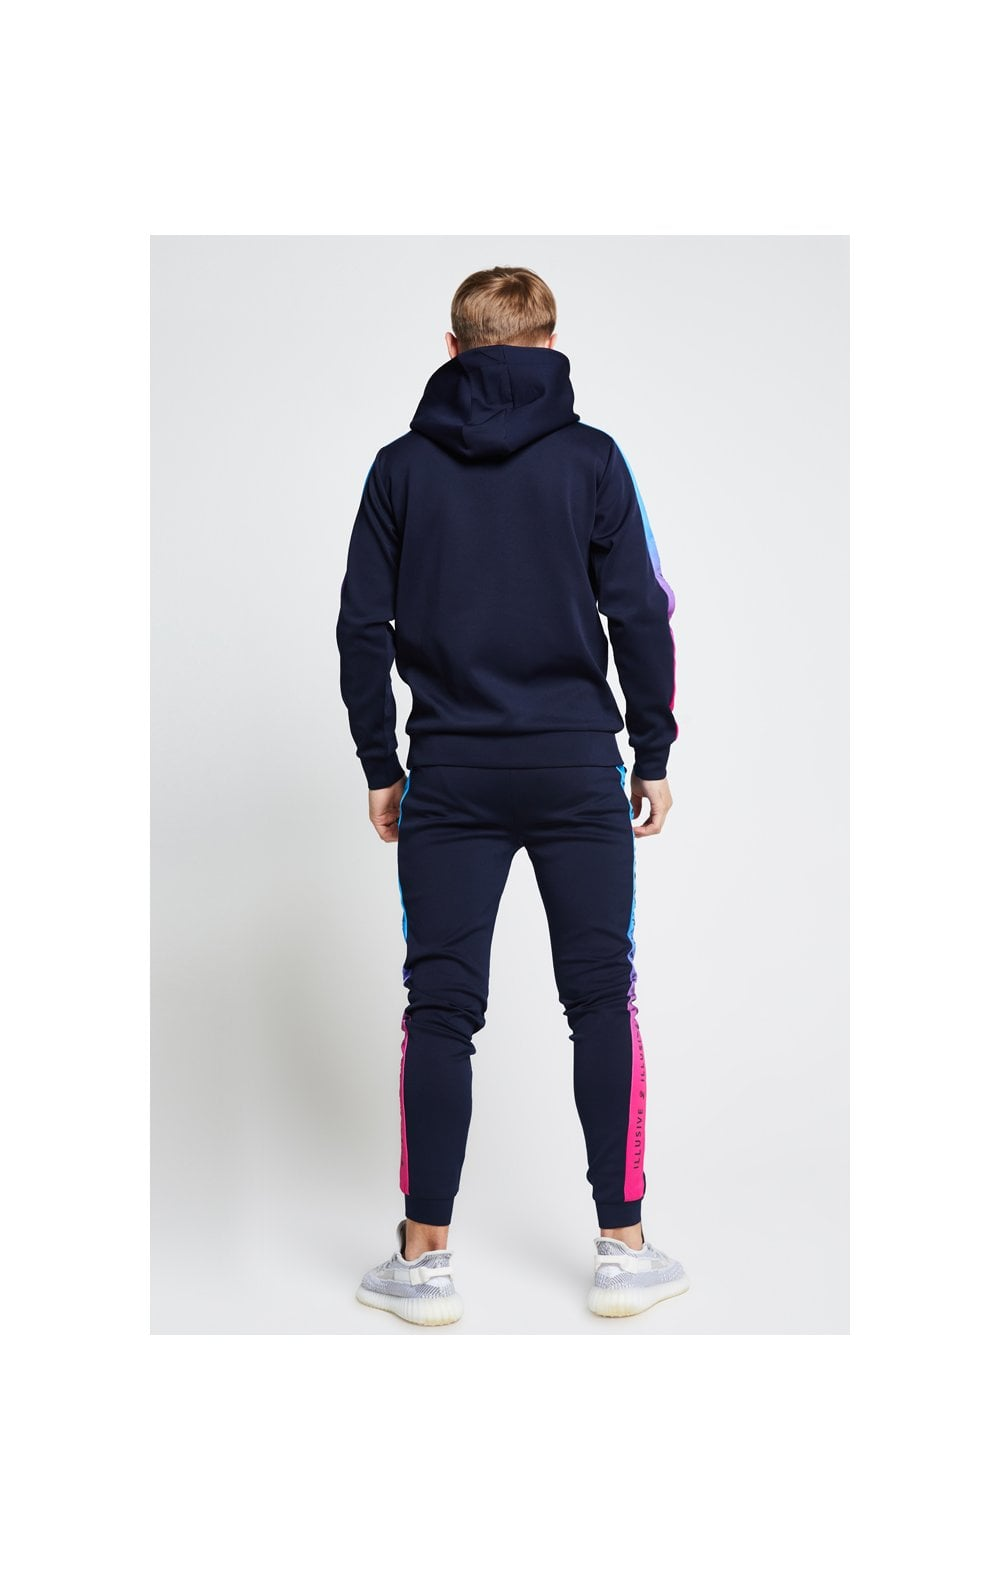 Illusive London Fade Panel Overhead Hoodie - Navy Blue & Pink (4)